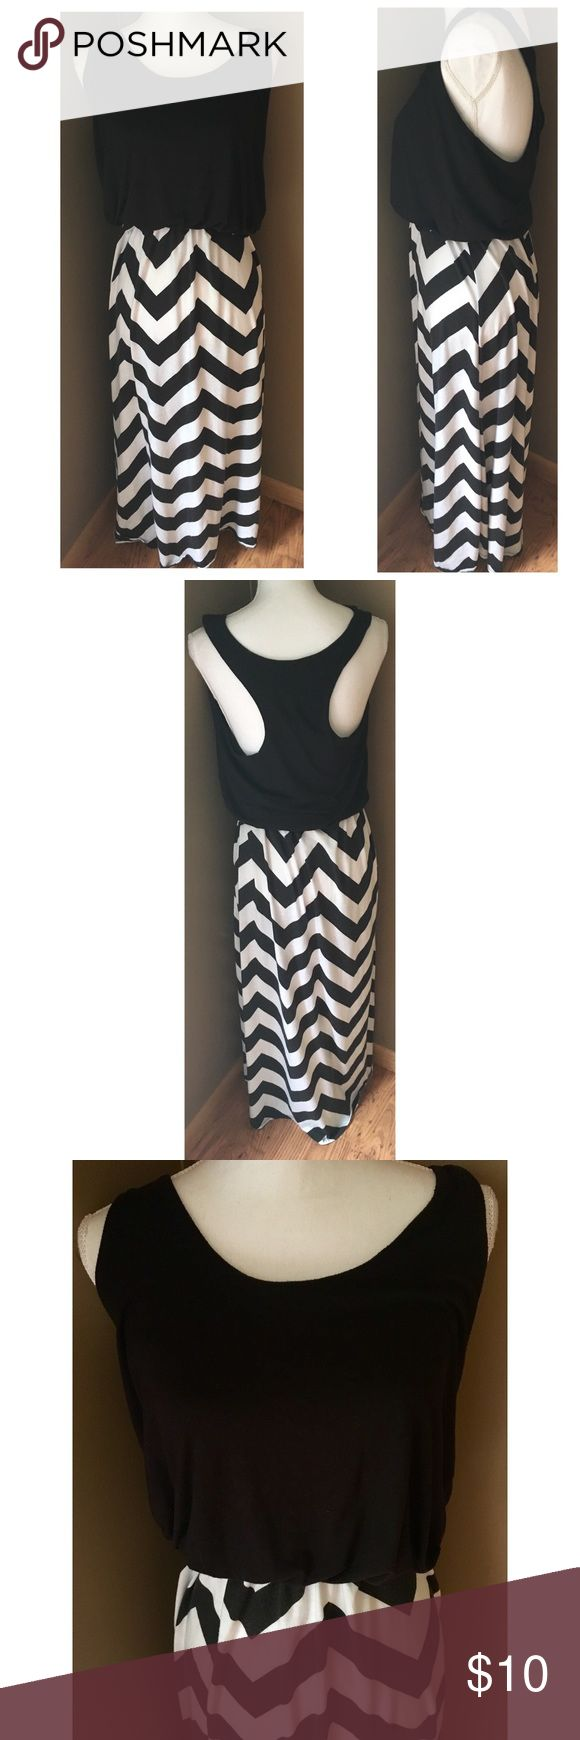 """Alison Britney Black & White Chevron Maxi Dress Allison Britney black & white sleeveless maxi dress with chevron Fair used condition - some light overall pilling and fading - denoted in price Size M --- super stretchy, though --- Pit to Pit: 19"""" --- Waist: 27"""" unstretched --- Hips: 48"""" --- Length: 55""""         *9* alison britney Dresses Maxi"""